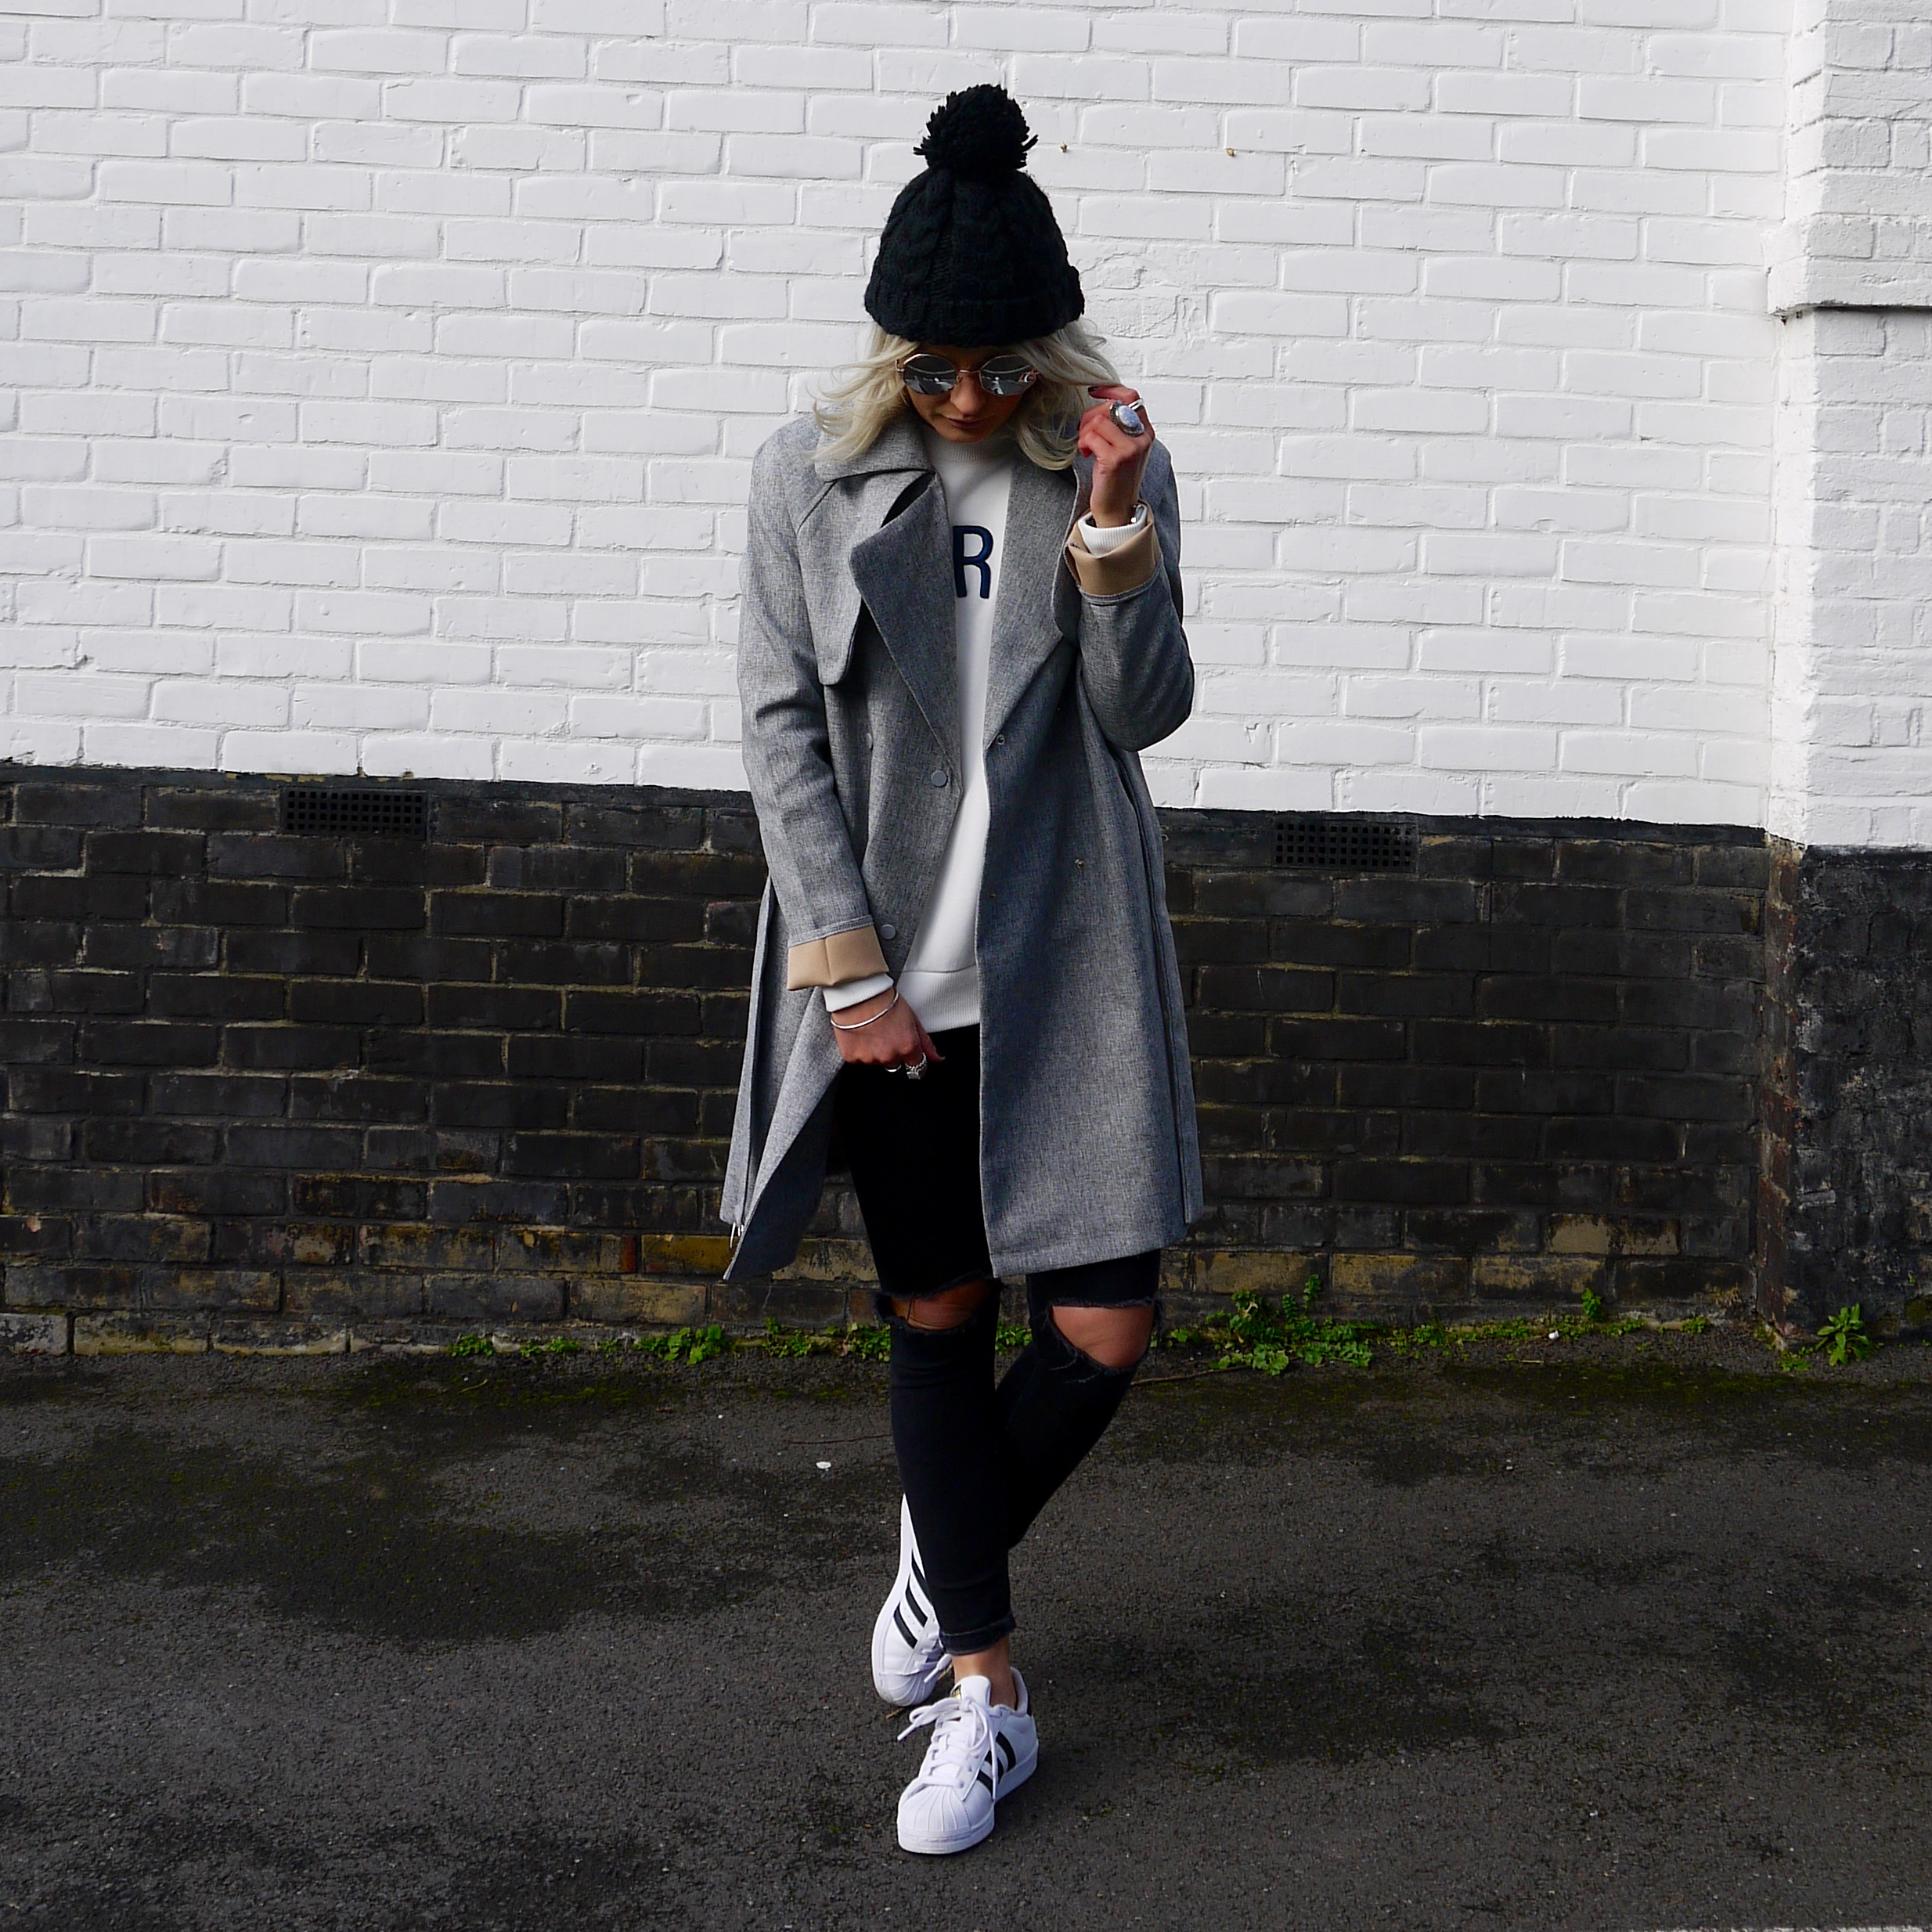 laura byrnes, lauras little locket, boohoo grey trench coat, white paris sweatshirt, addidas superstars, black ripped jeans, black beanie hat, casual sunday, mirrored sunglasses, fashion blogger,